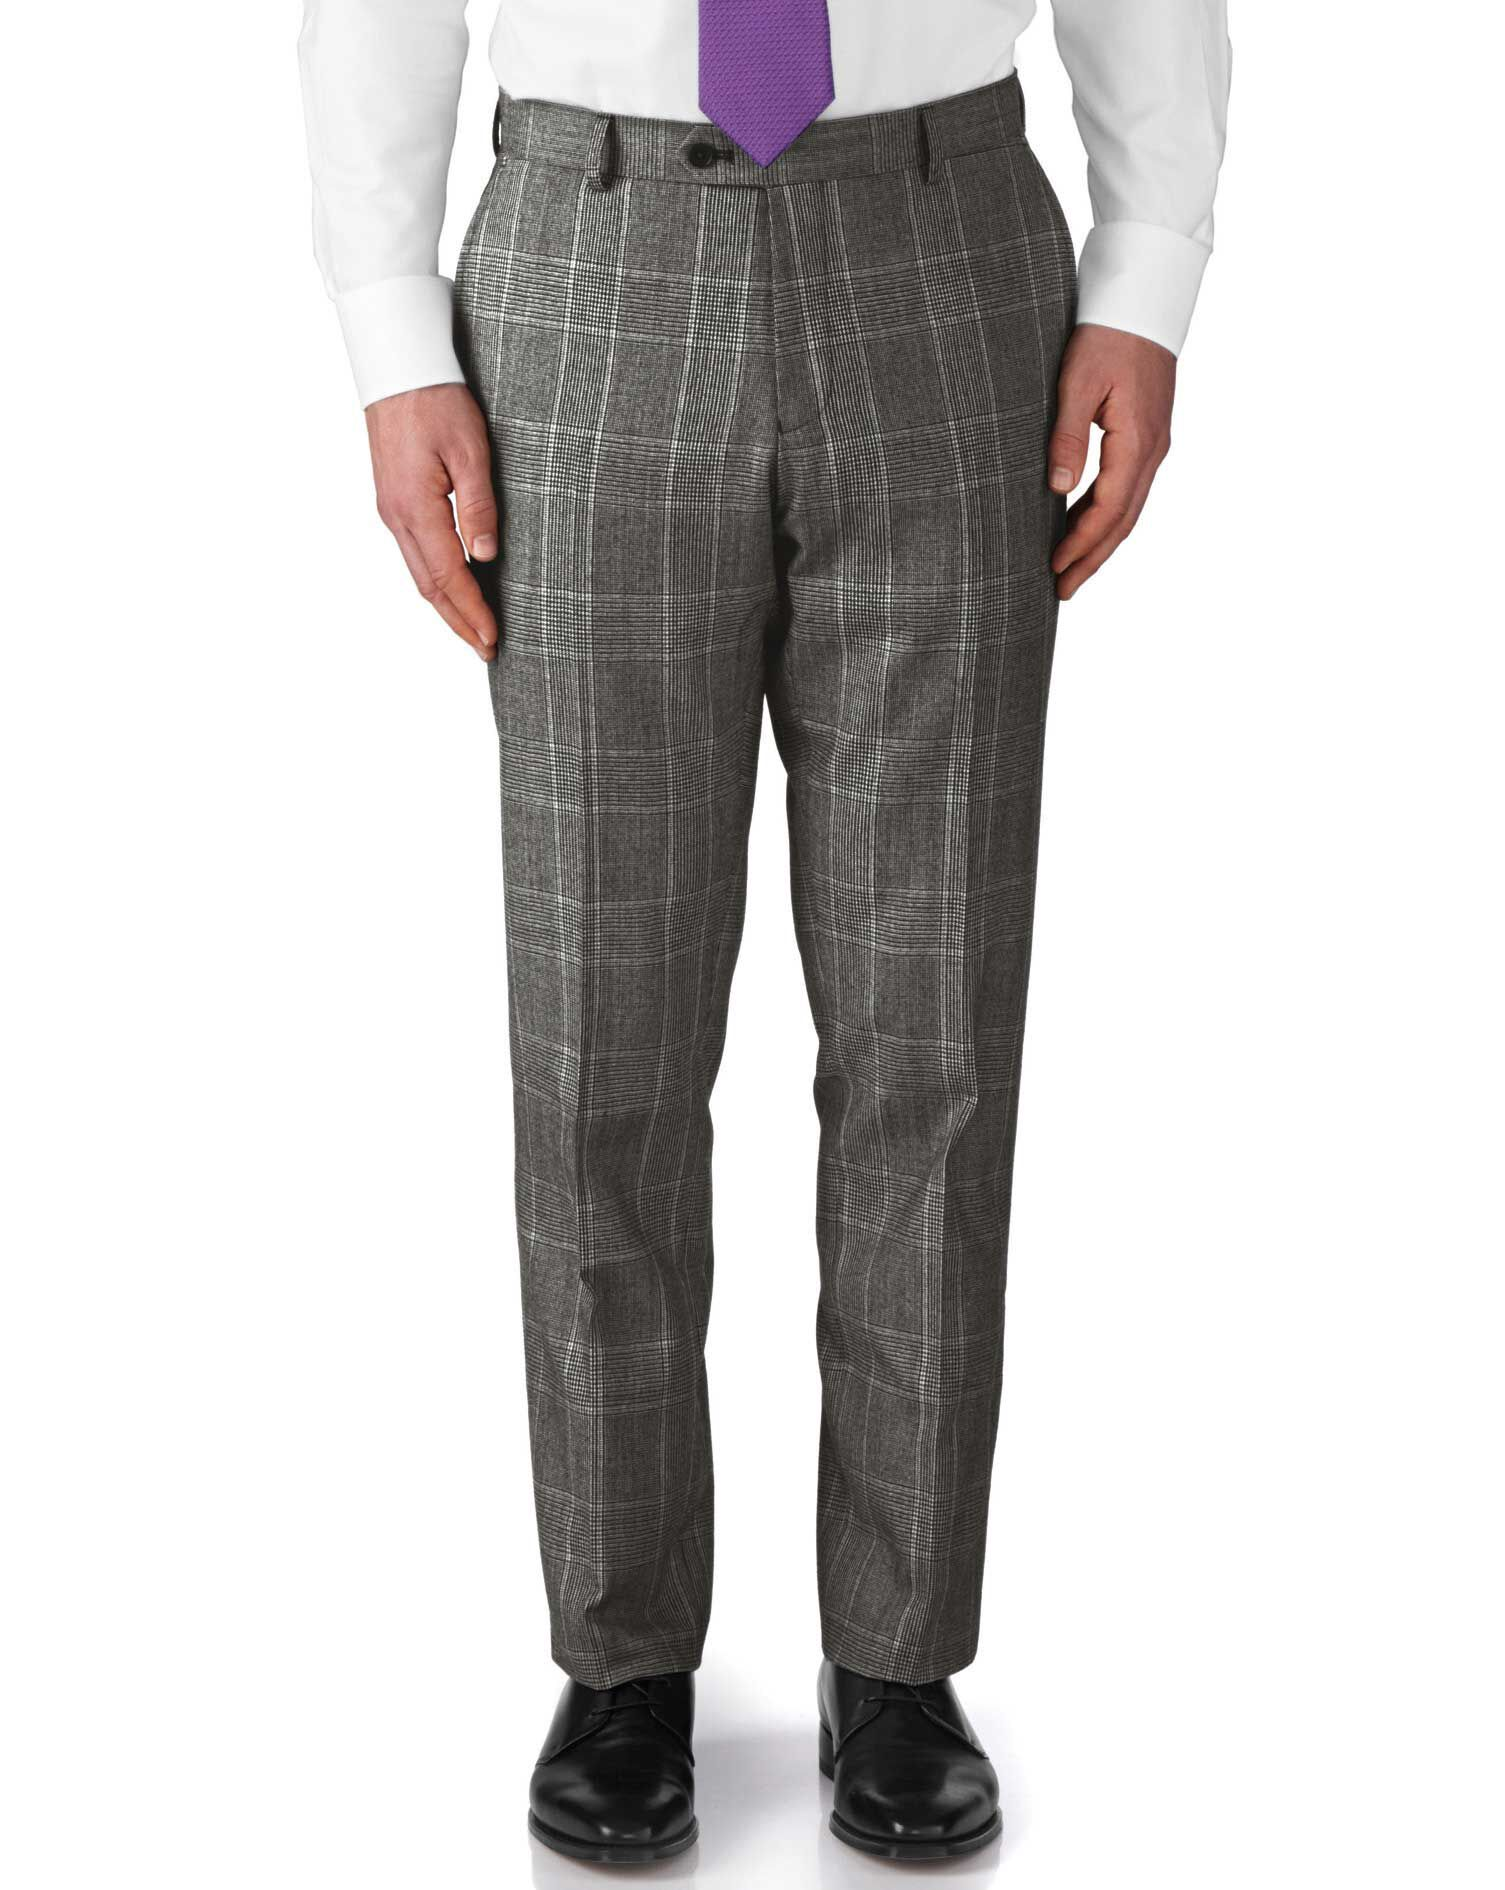 Grey Slim Fit Check Business Suit Trousers Size W34 L32 by Charles Tyrwhitt